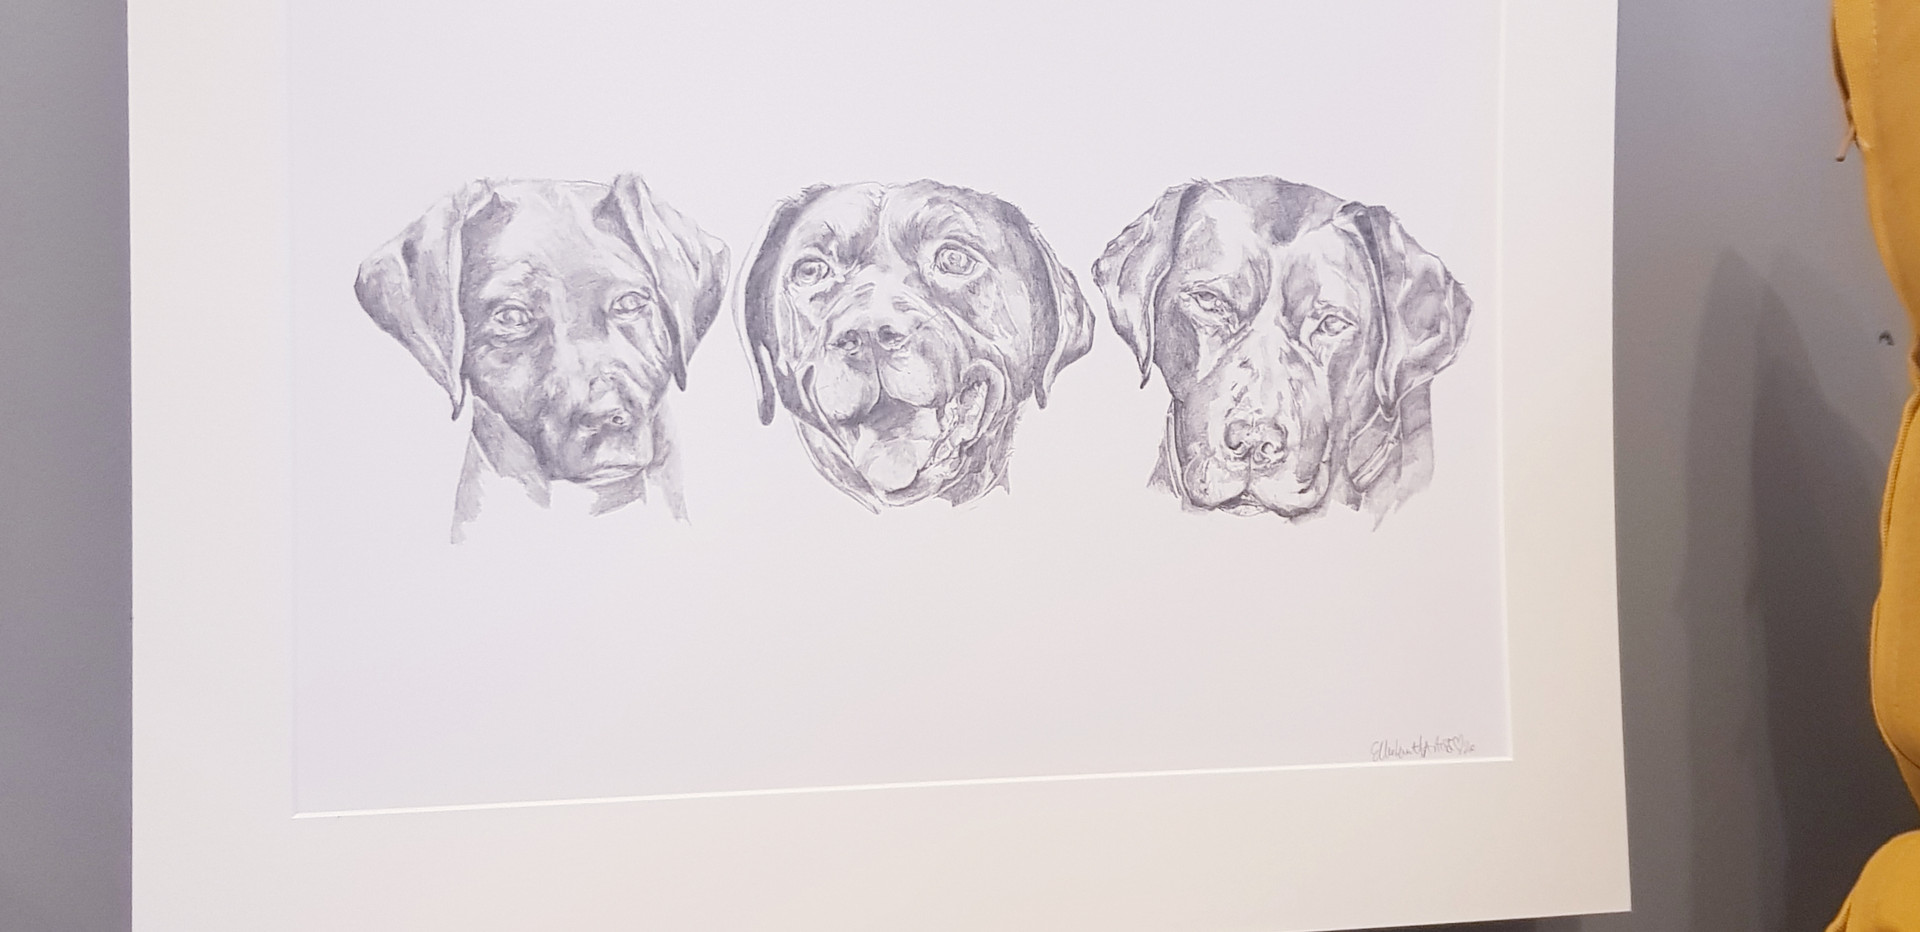 3 portraits of a young to old labrador